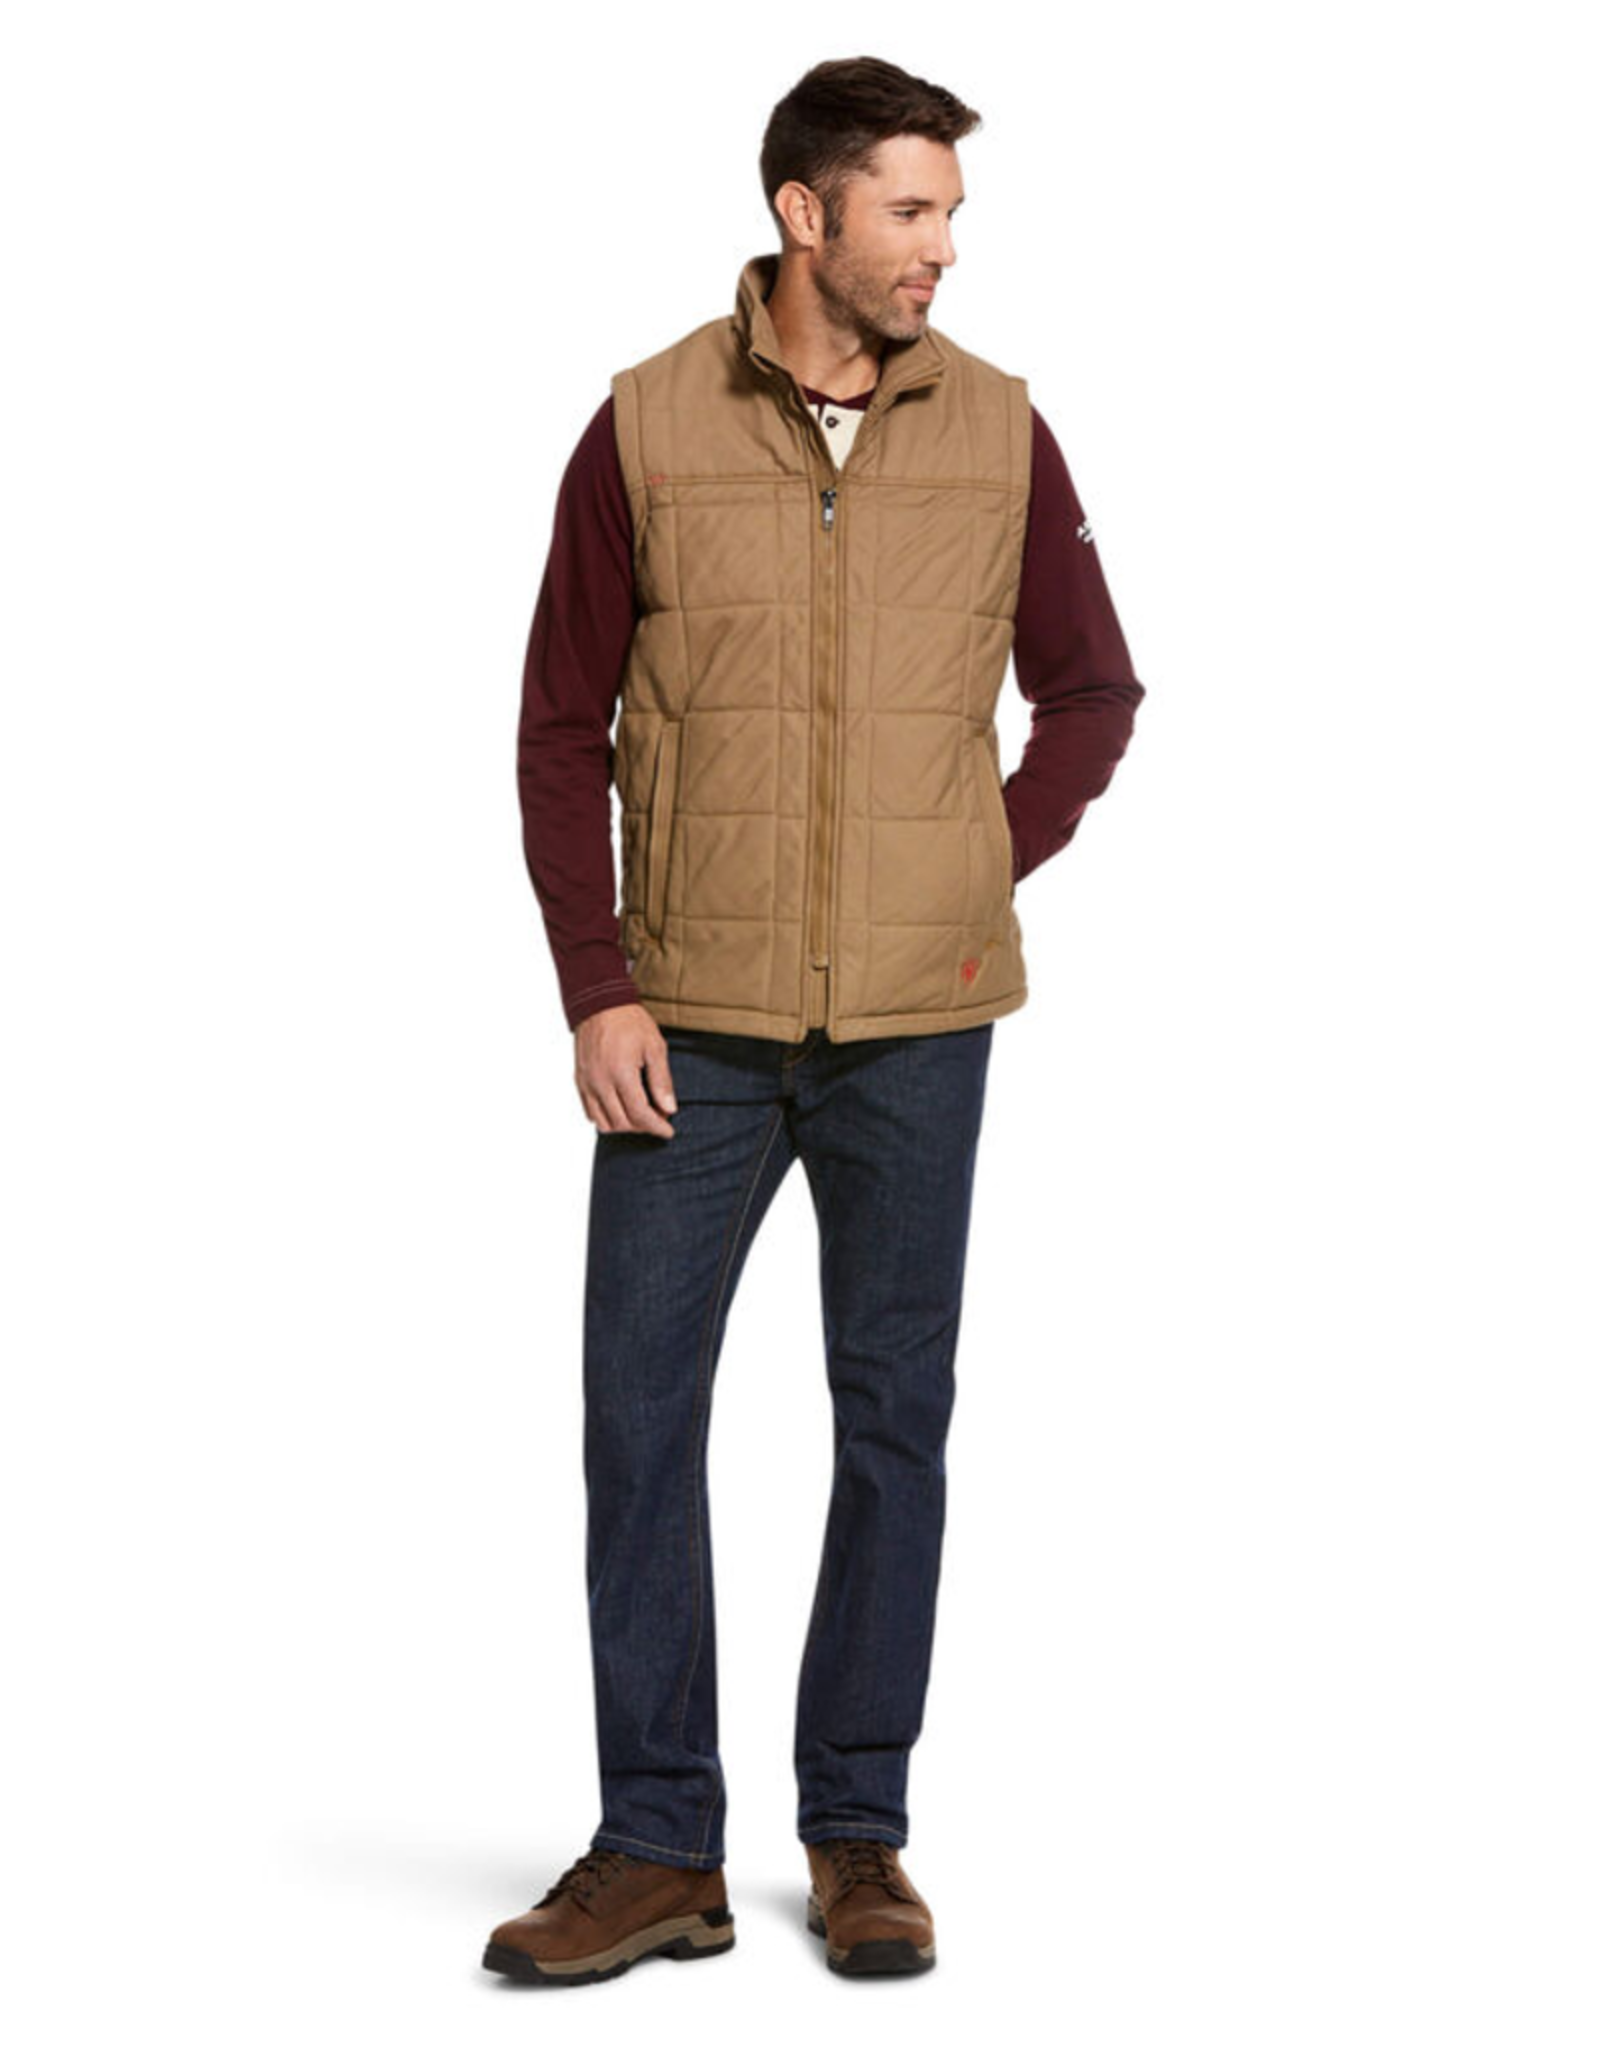 Ariat Ariat Crius Insulated CC Vest